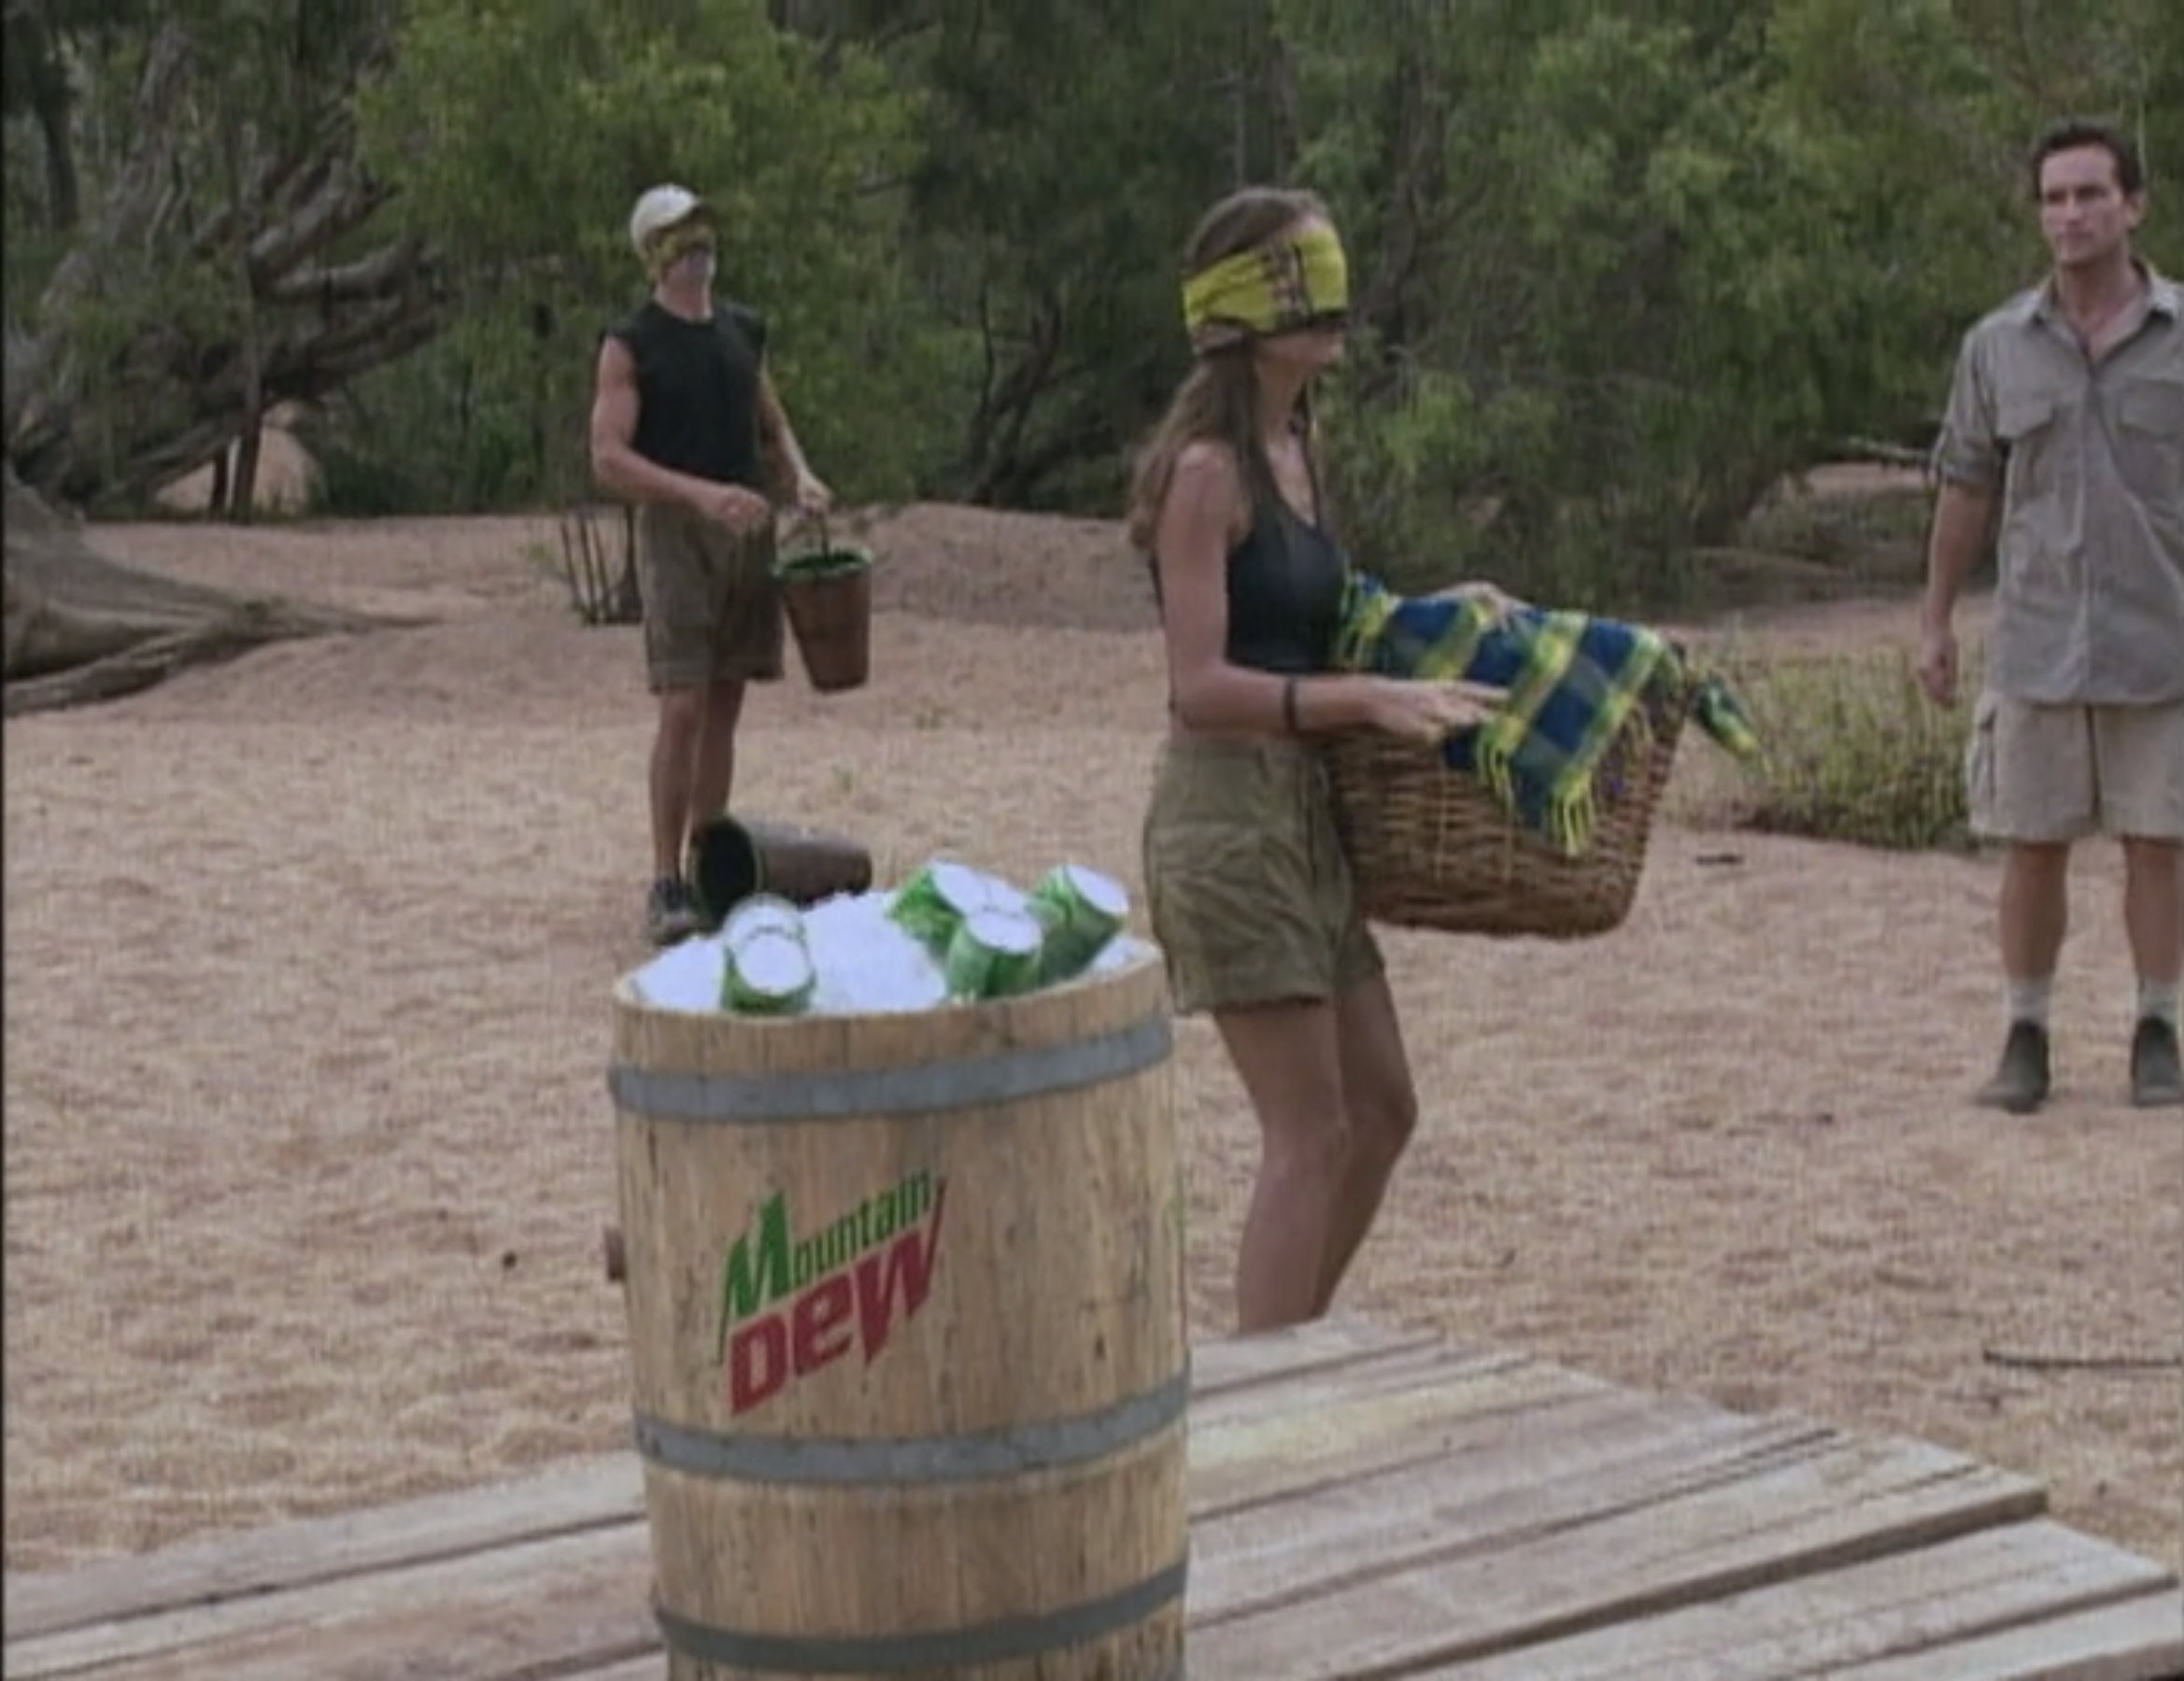 Jeff Probst watches blindfolded castaways carry basket near a barrel of Mountain Dew